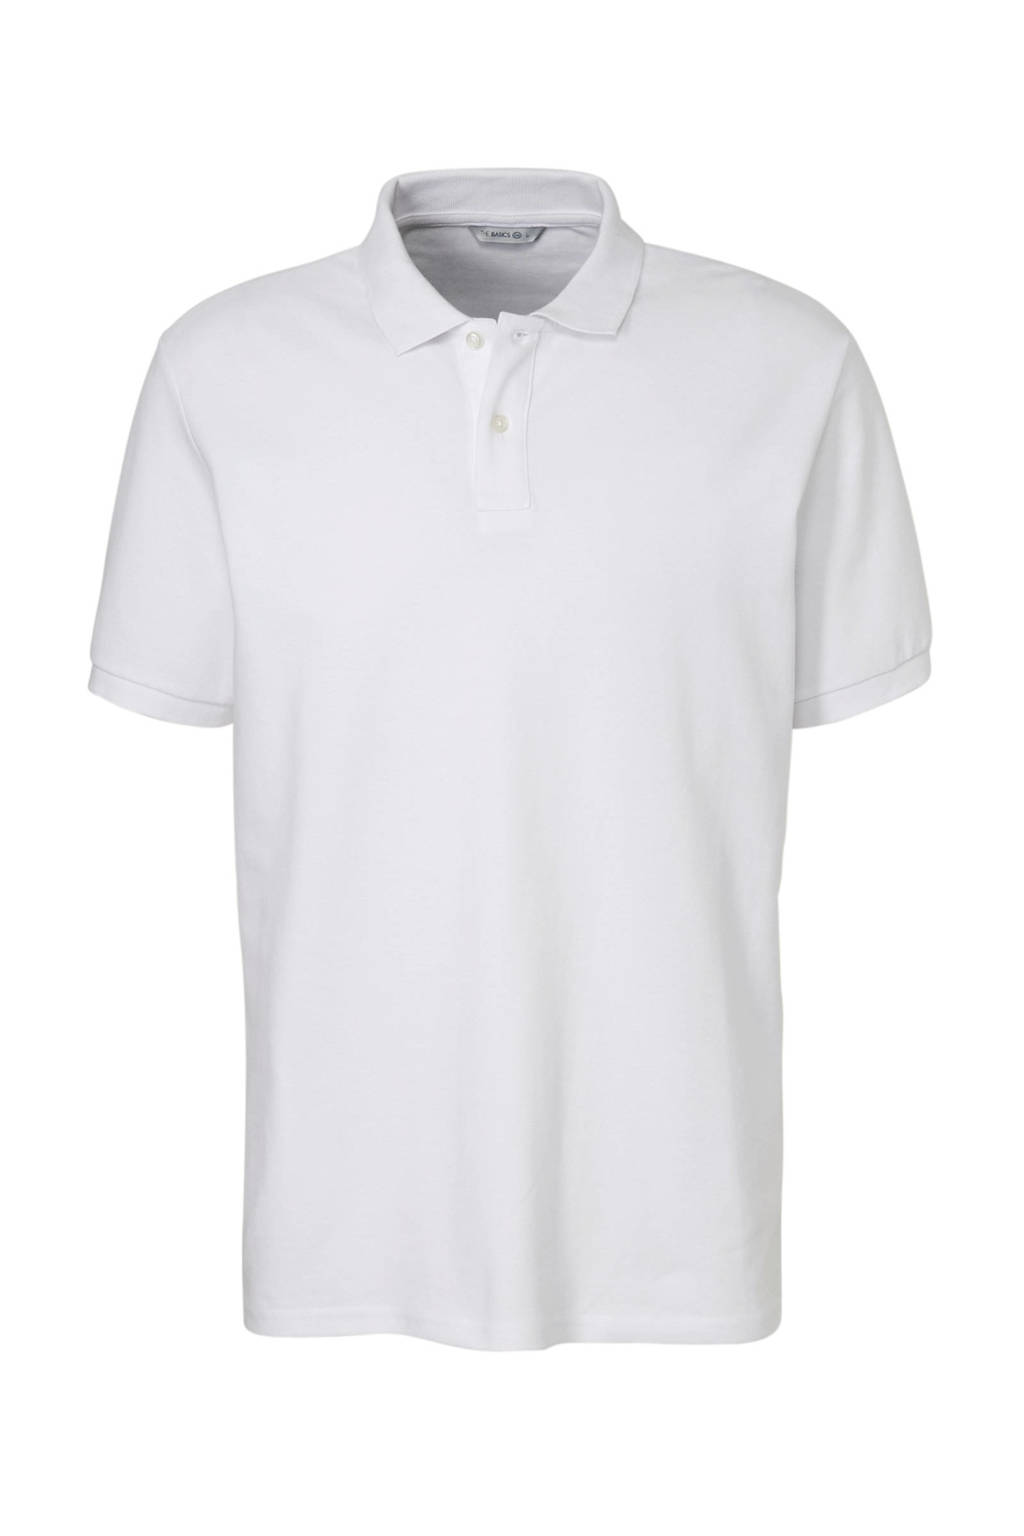 C&A Angelo Litrico regular fit polo van biologisch katoen wit, Wit